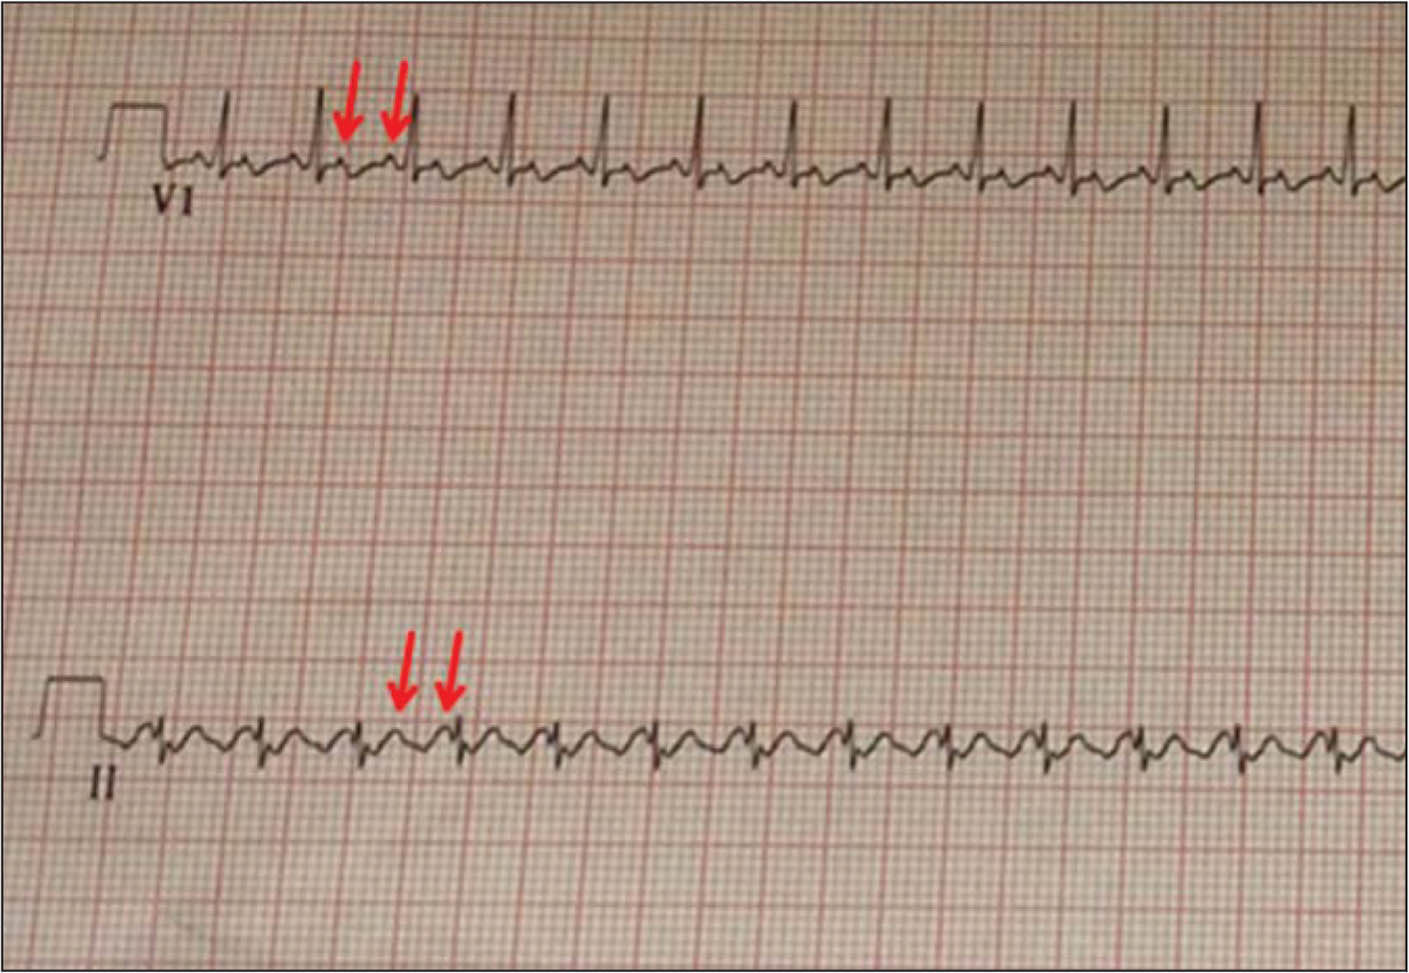 """An electrocardiogram showing atrial flutter with 2:1 atrioventricular conduction. The red arrows point to """"saw tooth"""" flutter waves. Ventricular rate is approximately 185 beats per minute."""